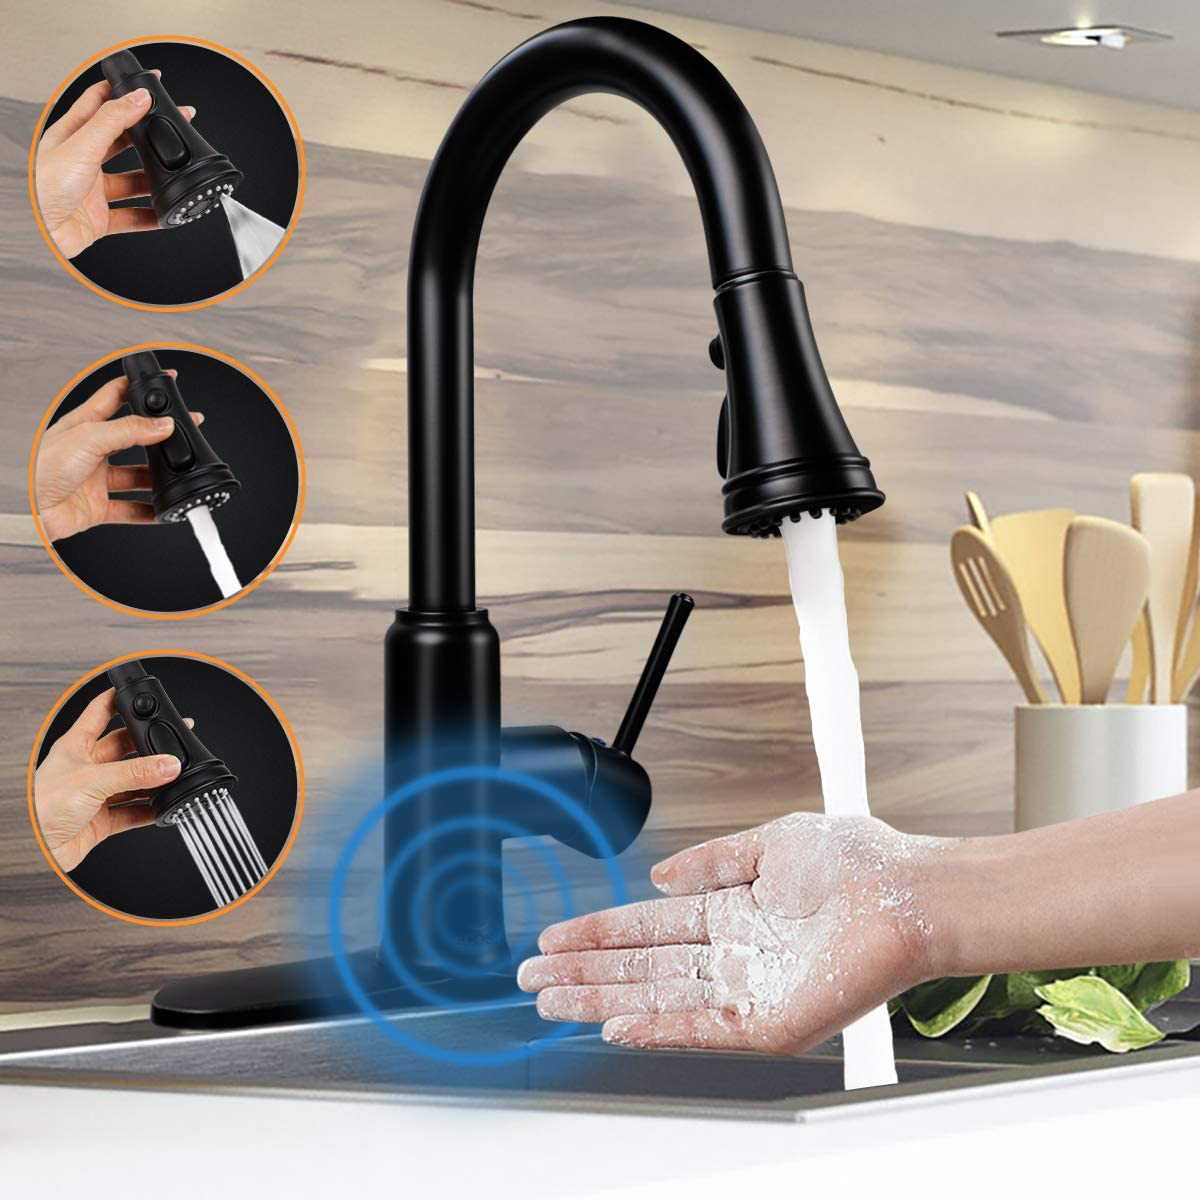 Touchless Motion Sensor kitchen Faucet with Pull Down Sprayer,Soosi Kitchen Faucets Touchless One 3 Hole Matte Black Kitchen Sink Faucets 3-Function Solid Brass Lead Free,5 Years Limited Warranty